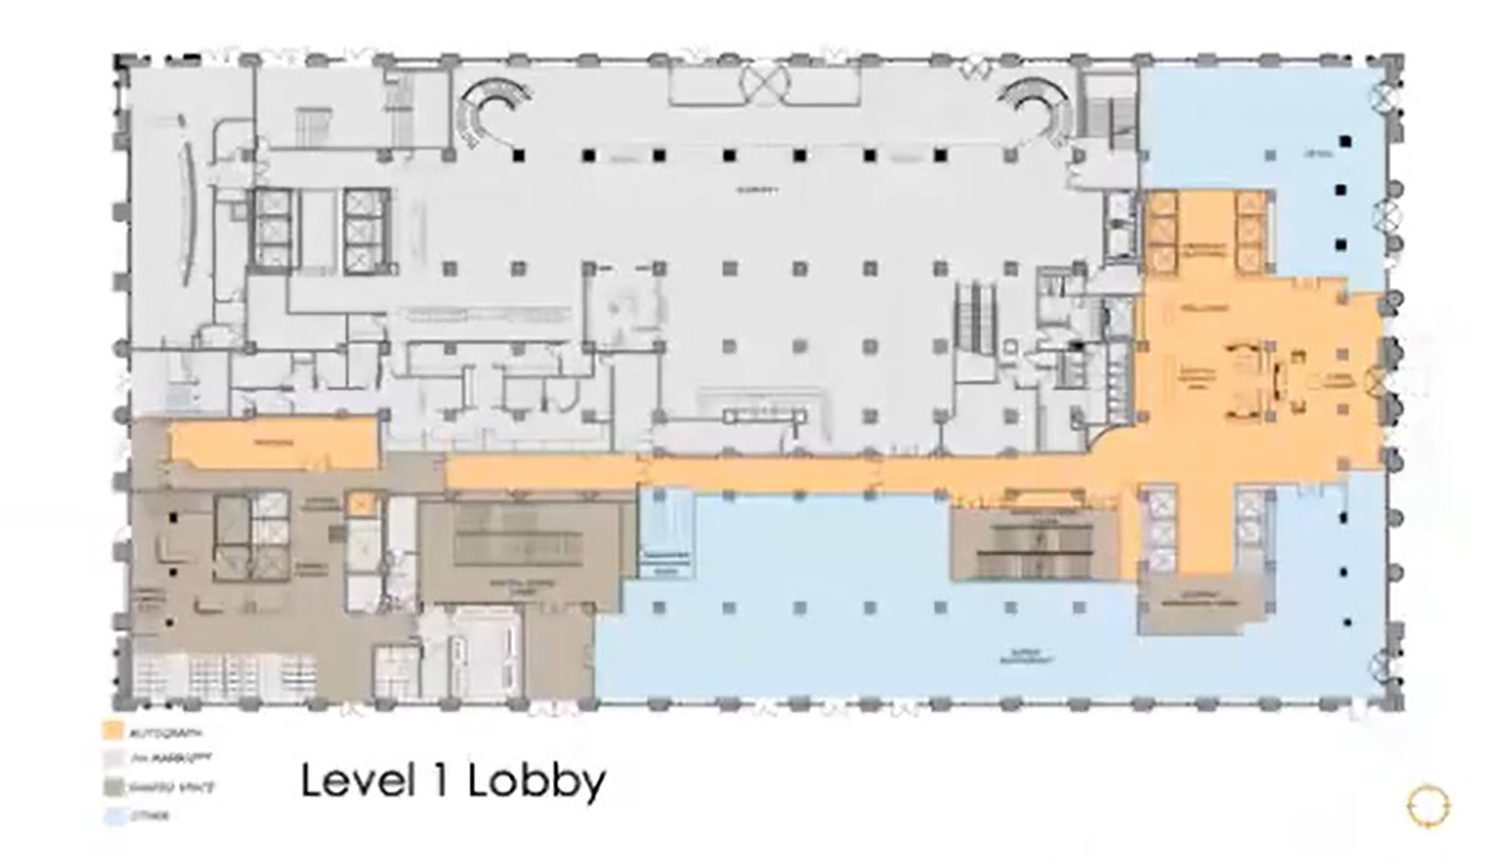 First Floor Plan for 208 S LaSalle Street. Drawing by The Prime Group